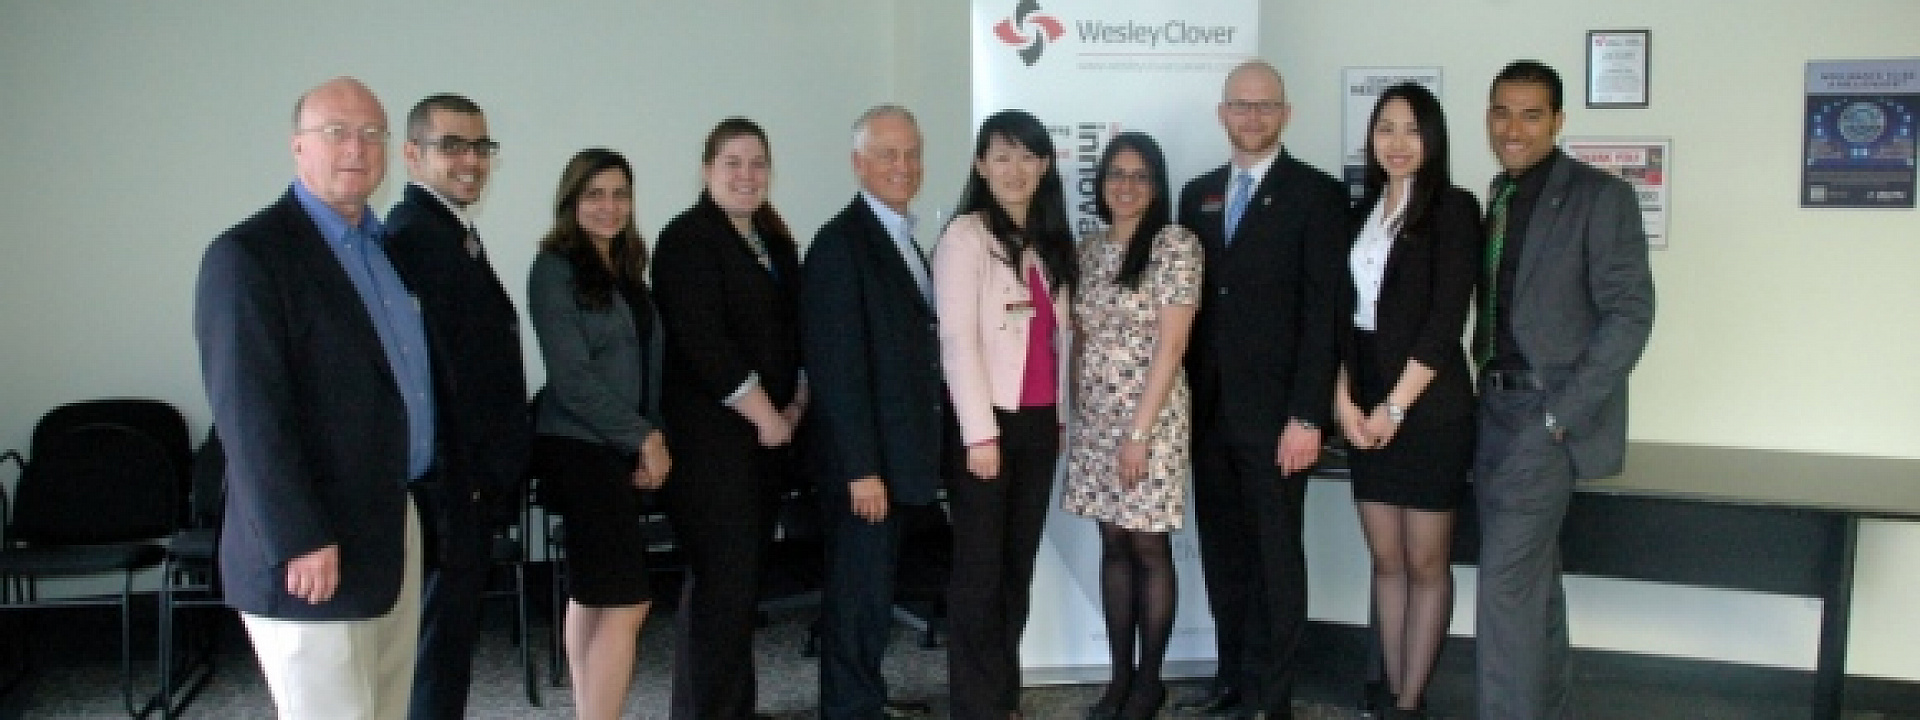 MBA students at Welsey Clover